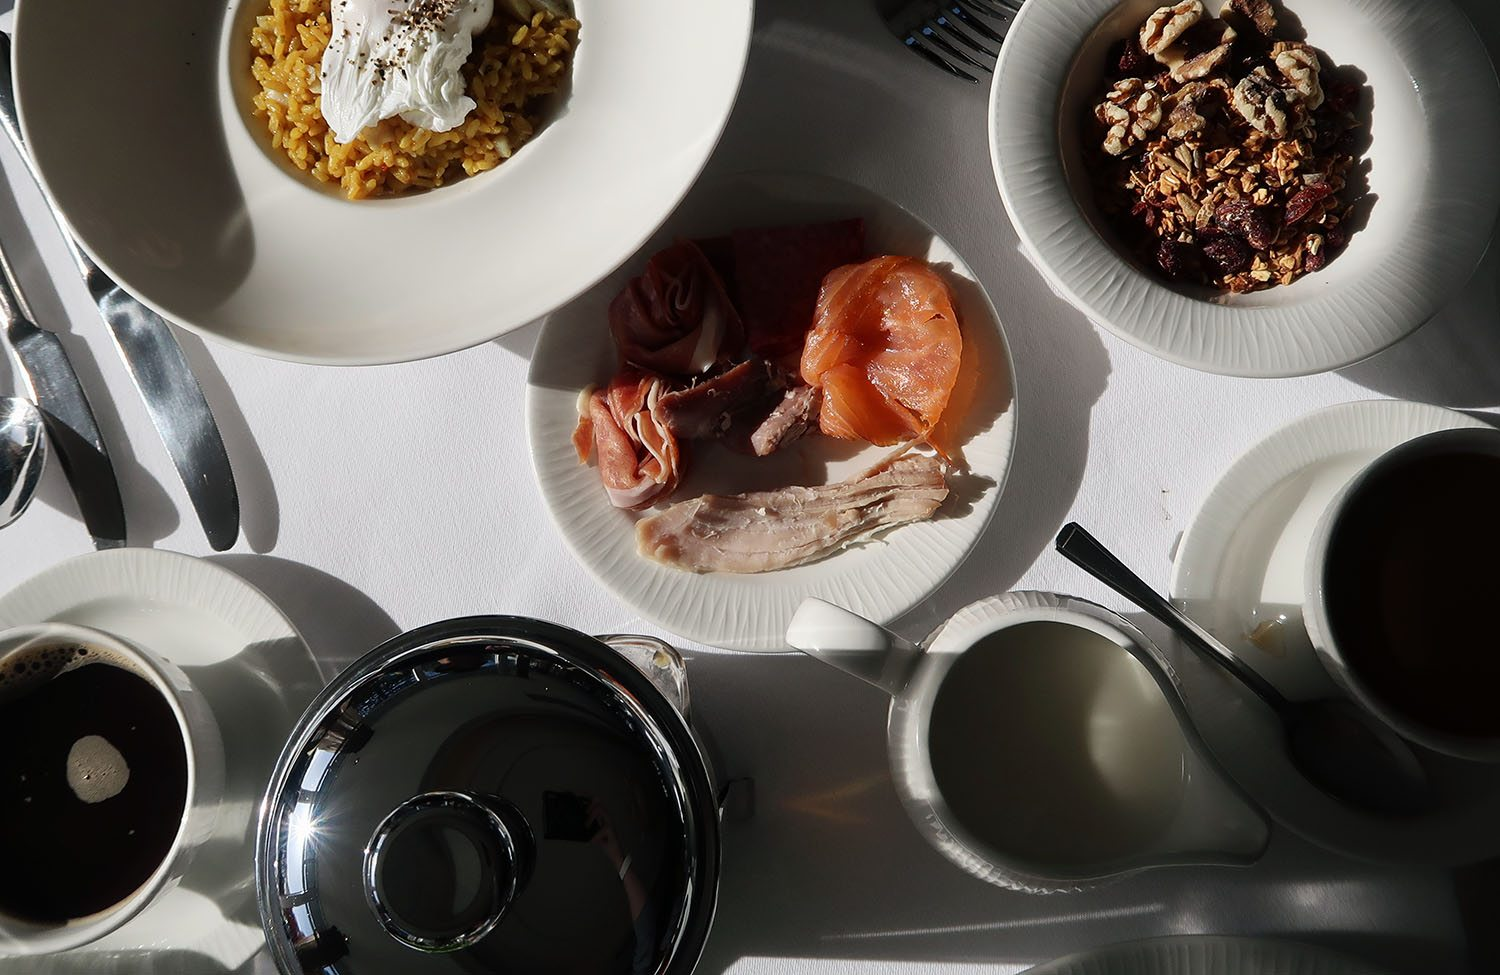 Top view of a table of breakfast dishes including kedgeree, poached egg, smoked salmon, meats, granola, coffee